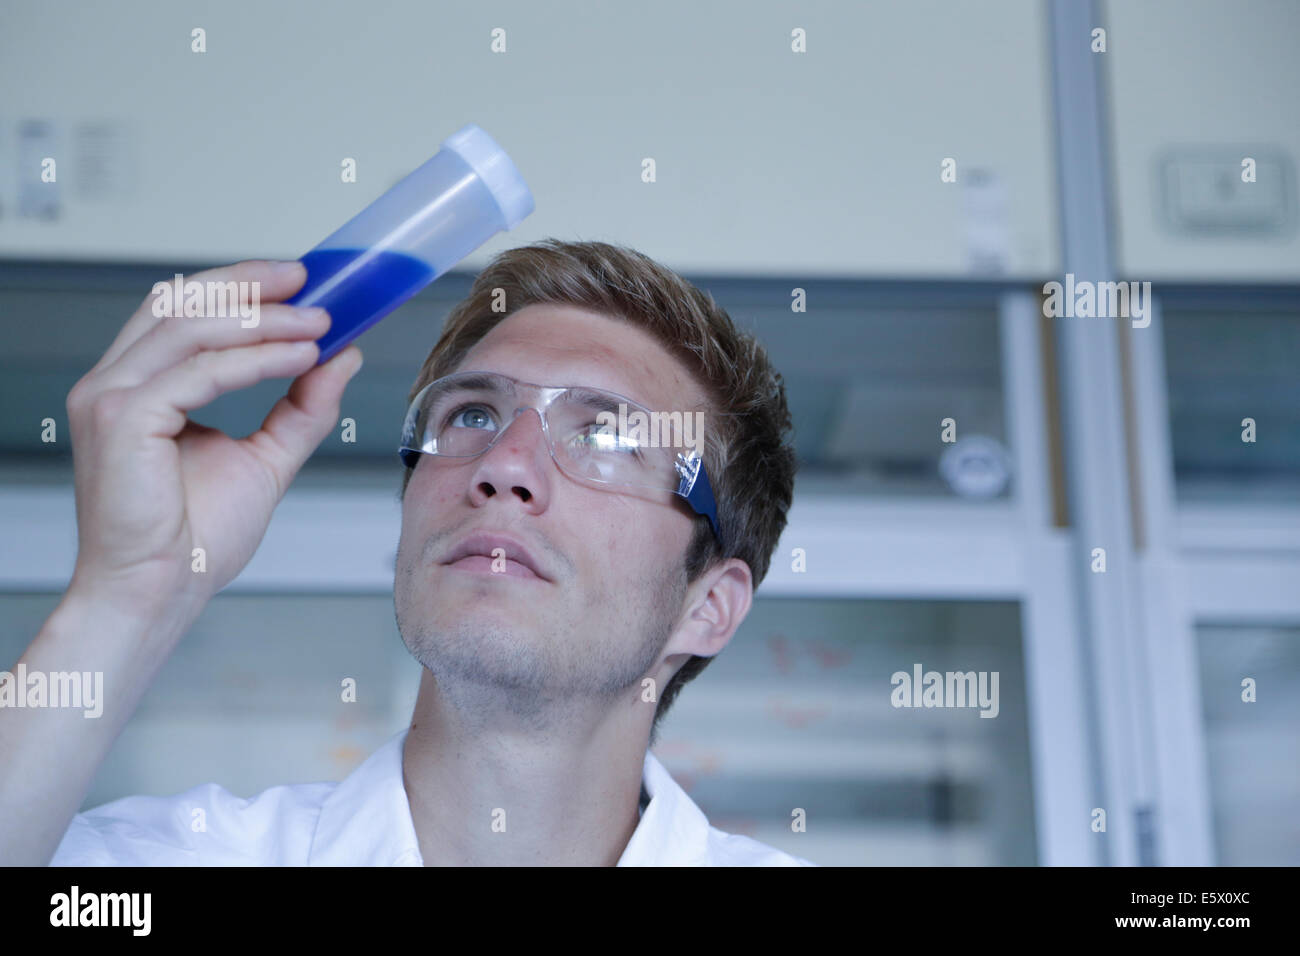 Male scientist looking up at sample in plastic bottle in lab - Stock Image